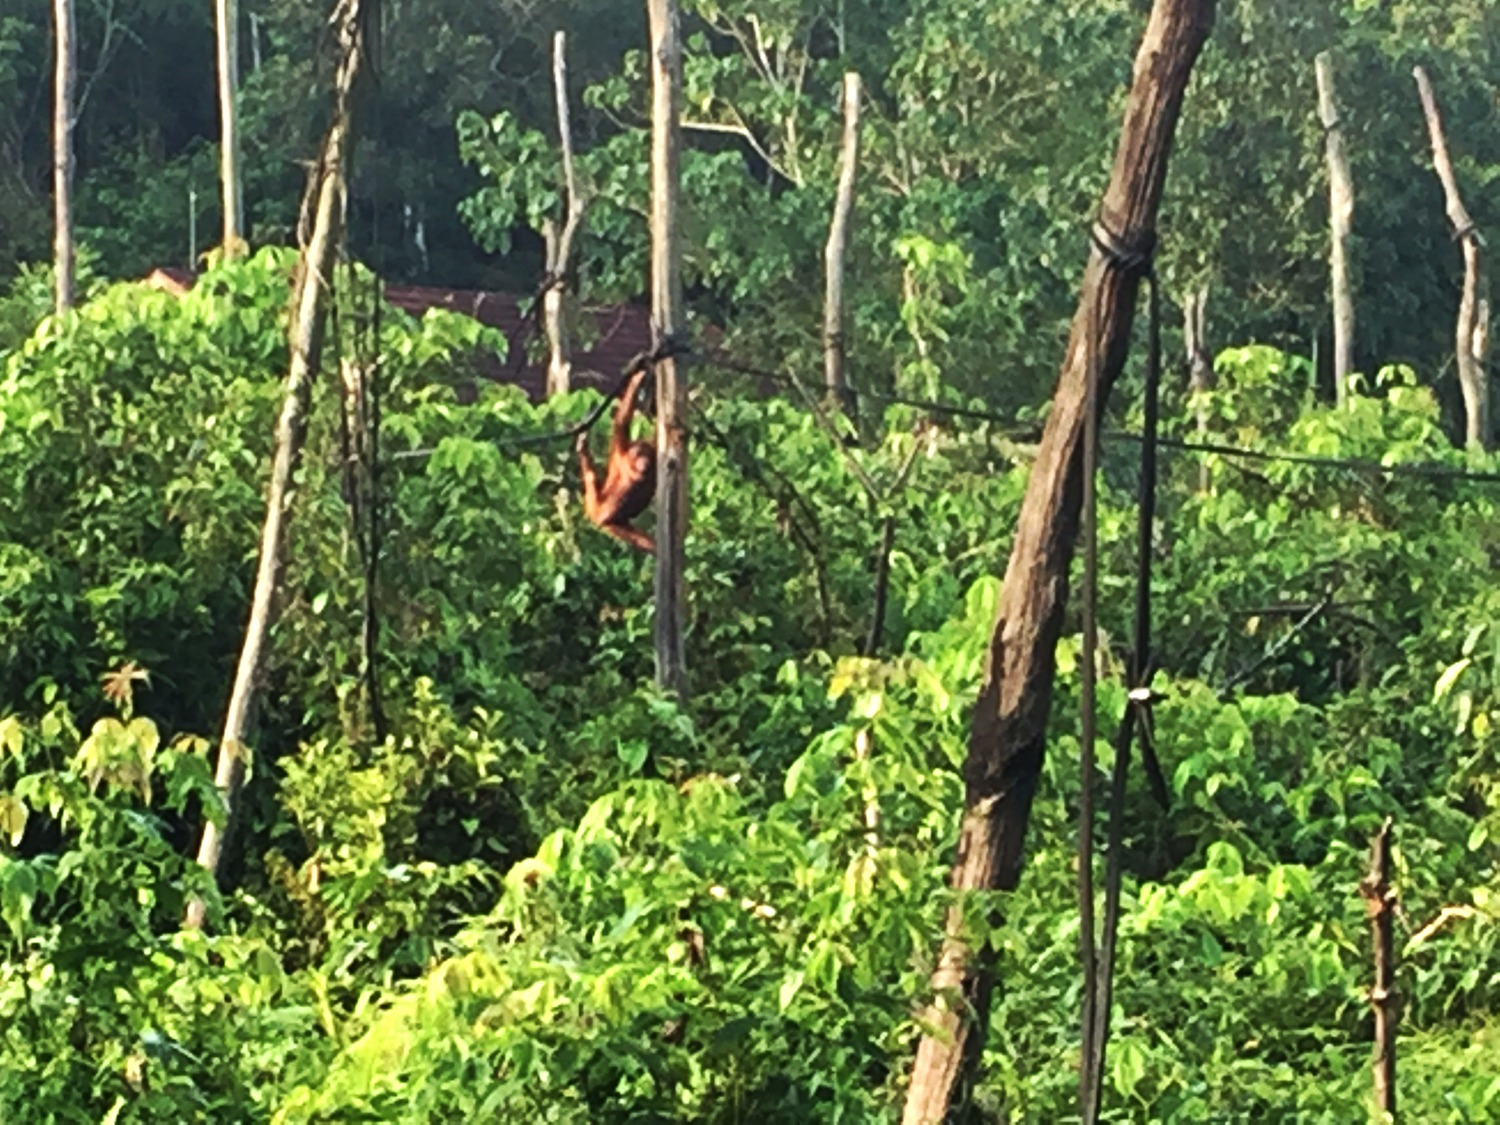 Climbing a new Rainforest